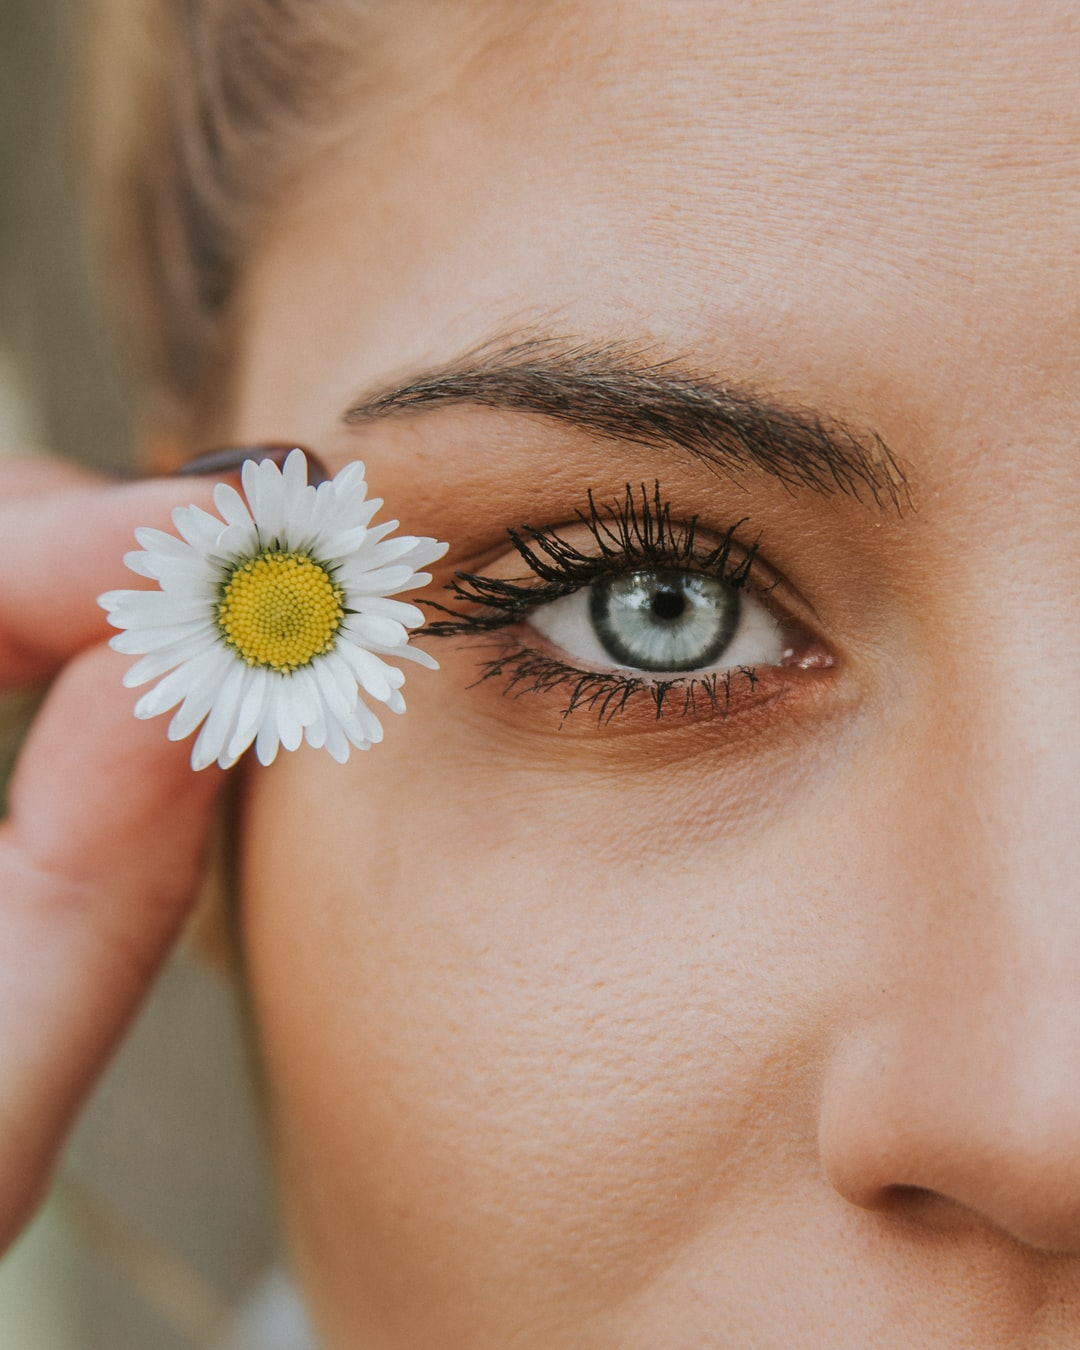 Natural Eye Care: How to Naturally Take Care of Your Eyes